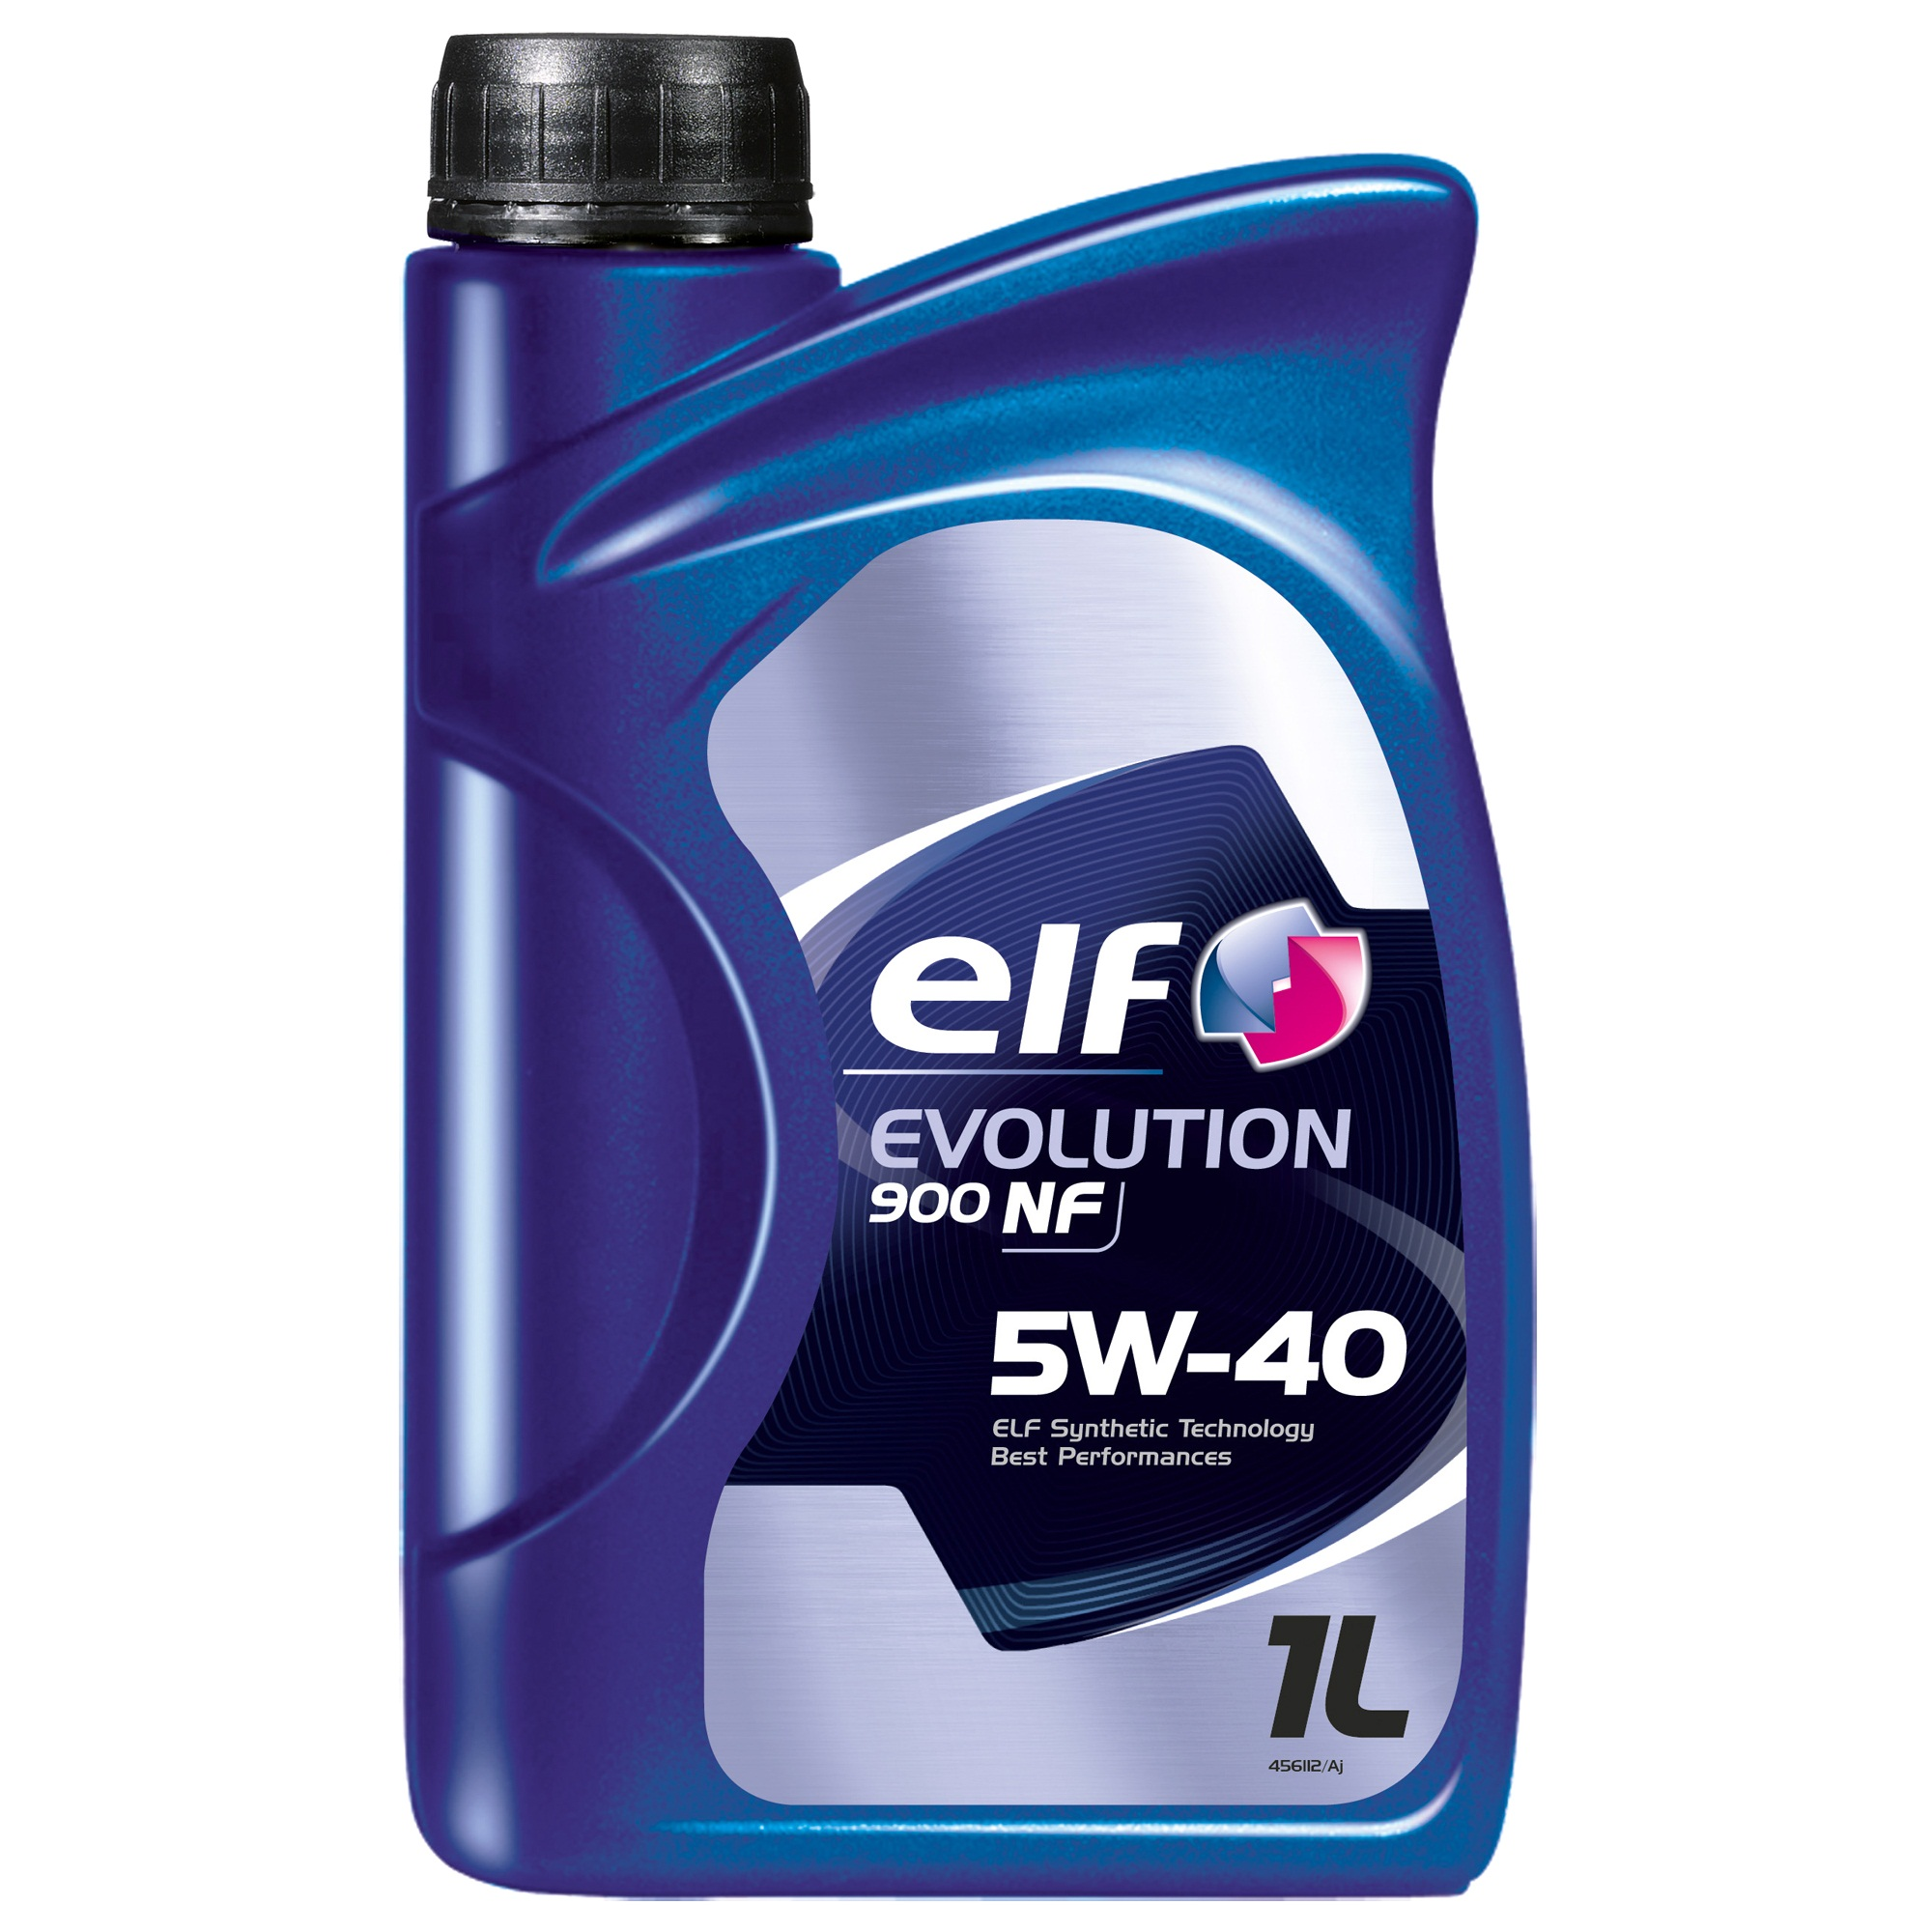 ULEI MOTOR ELF EVOLUTION 900 NF 5W40 1L